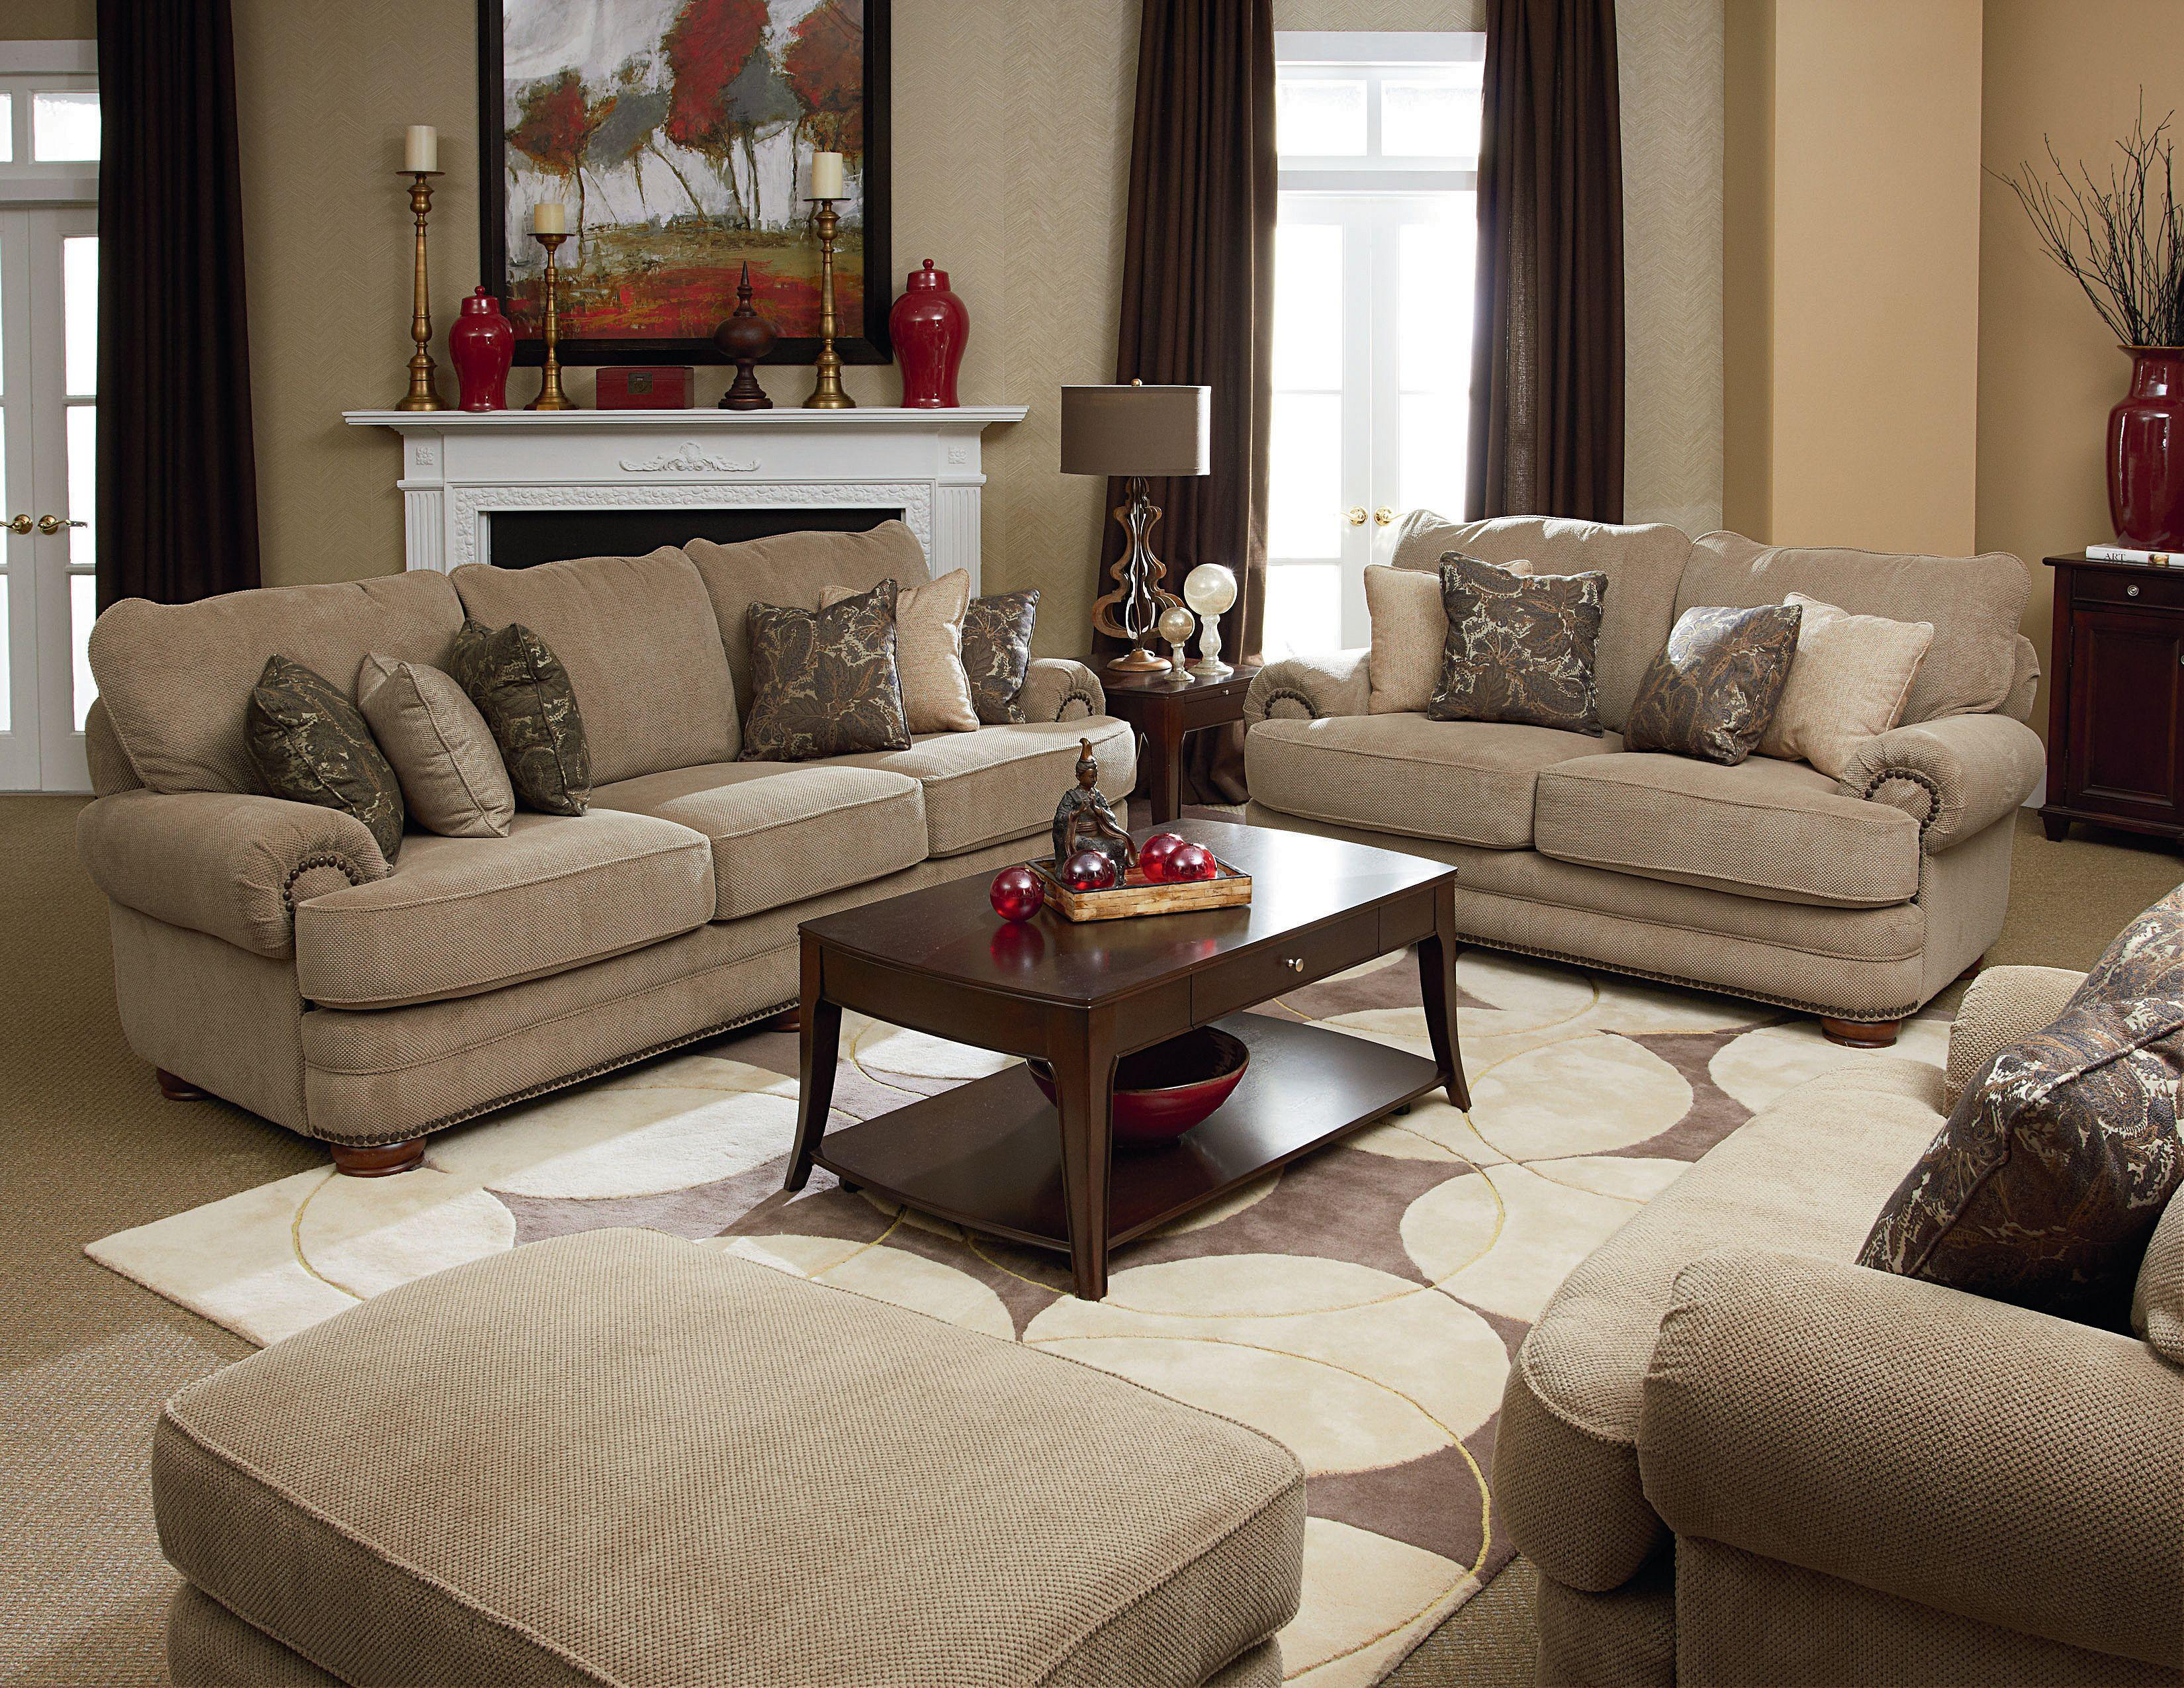 Lane Stanton Chair And Ottoman Set With Nail Head Trim Wood Accent Legs Wilson S Furniture Sets Bellingham Ferndale Lynden